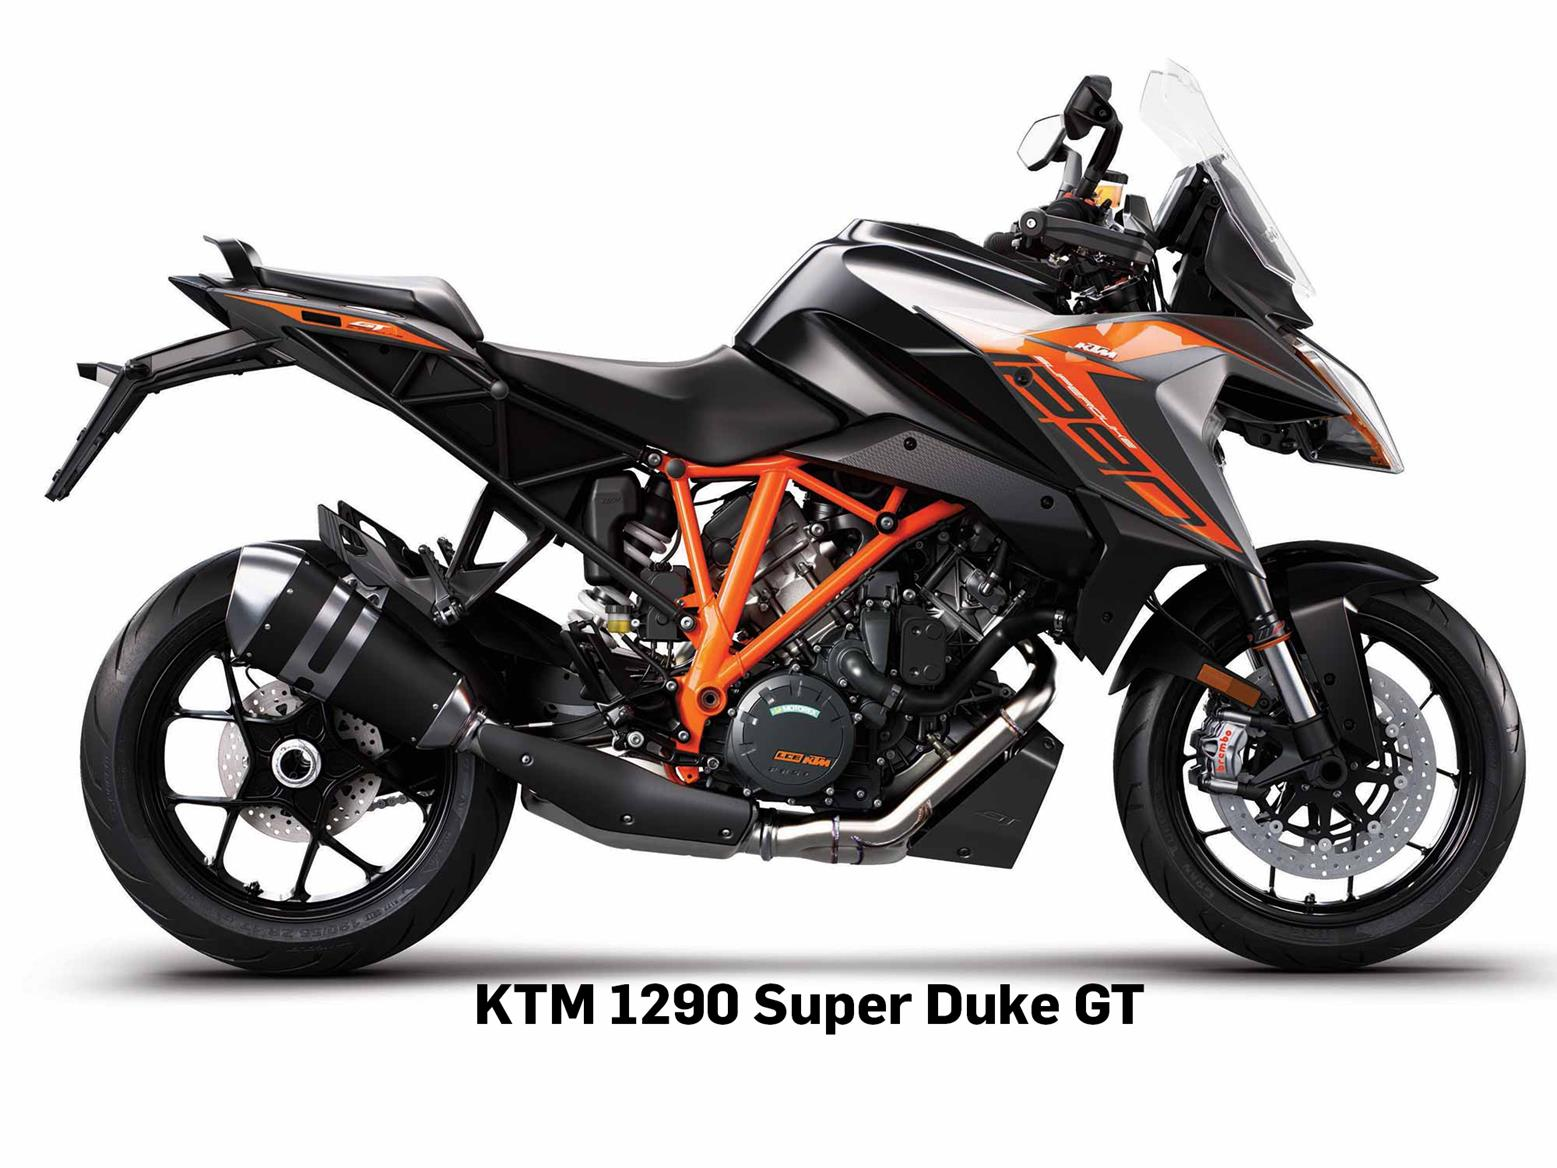 Read MCN's expert KTM 1290 Super Duke GT long term test review here